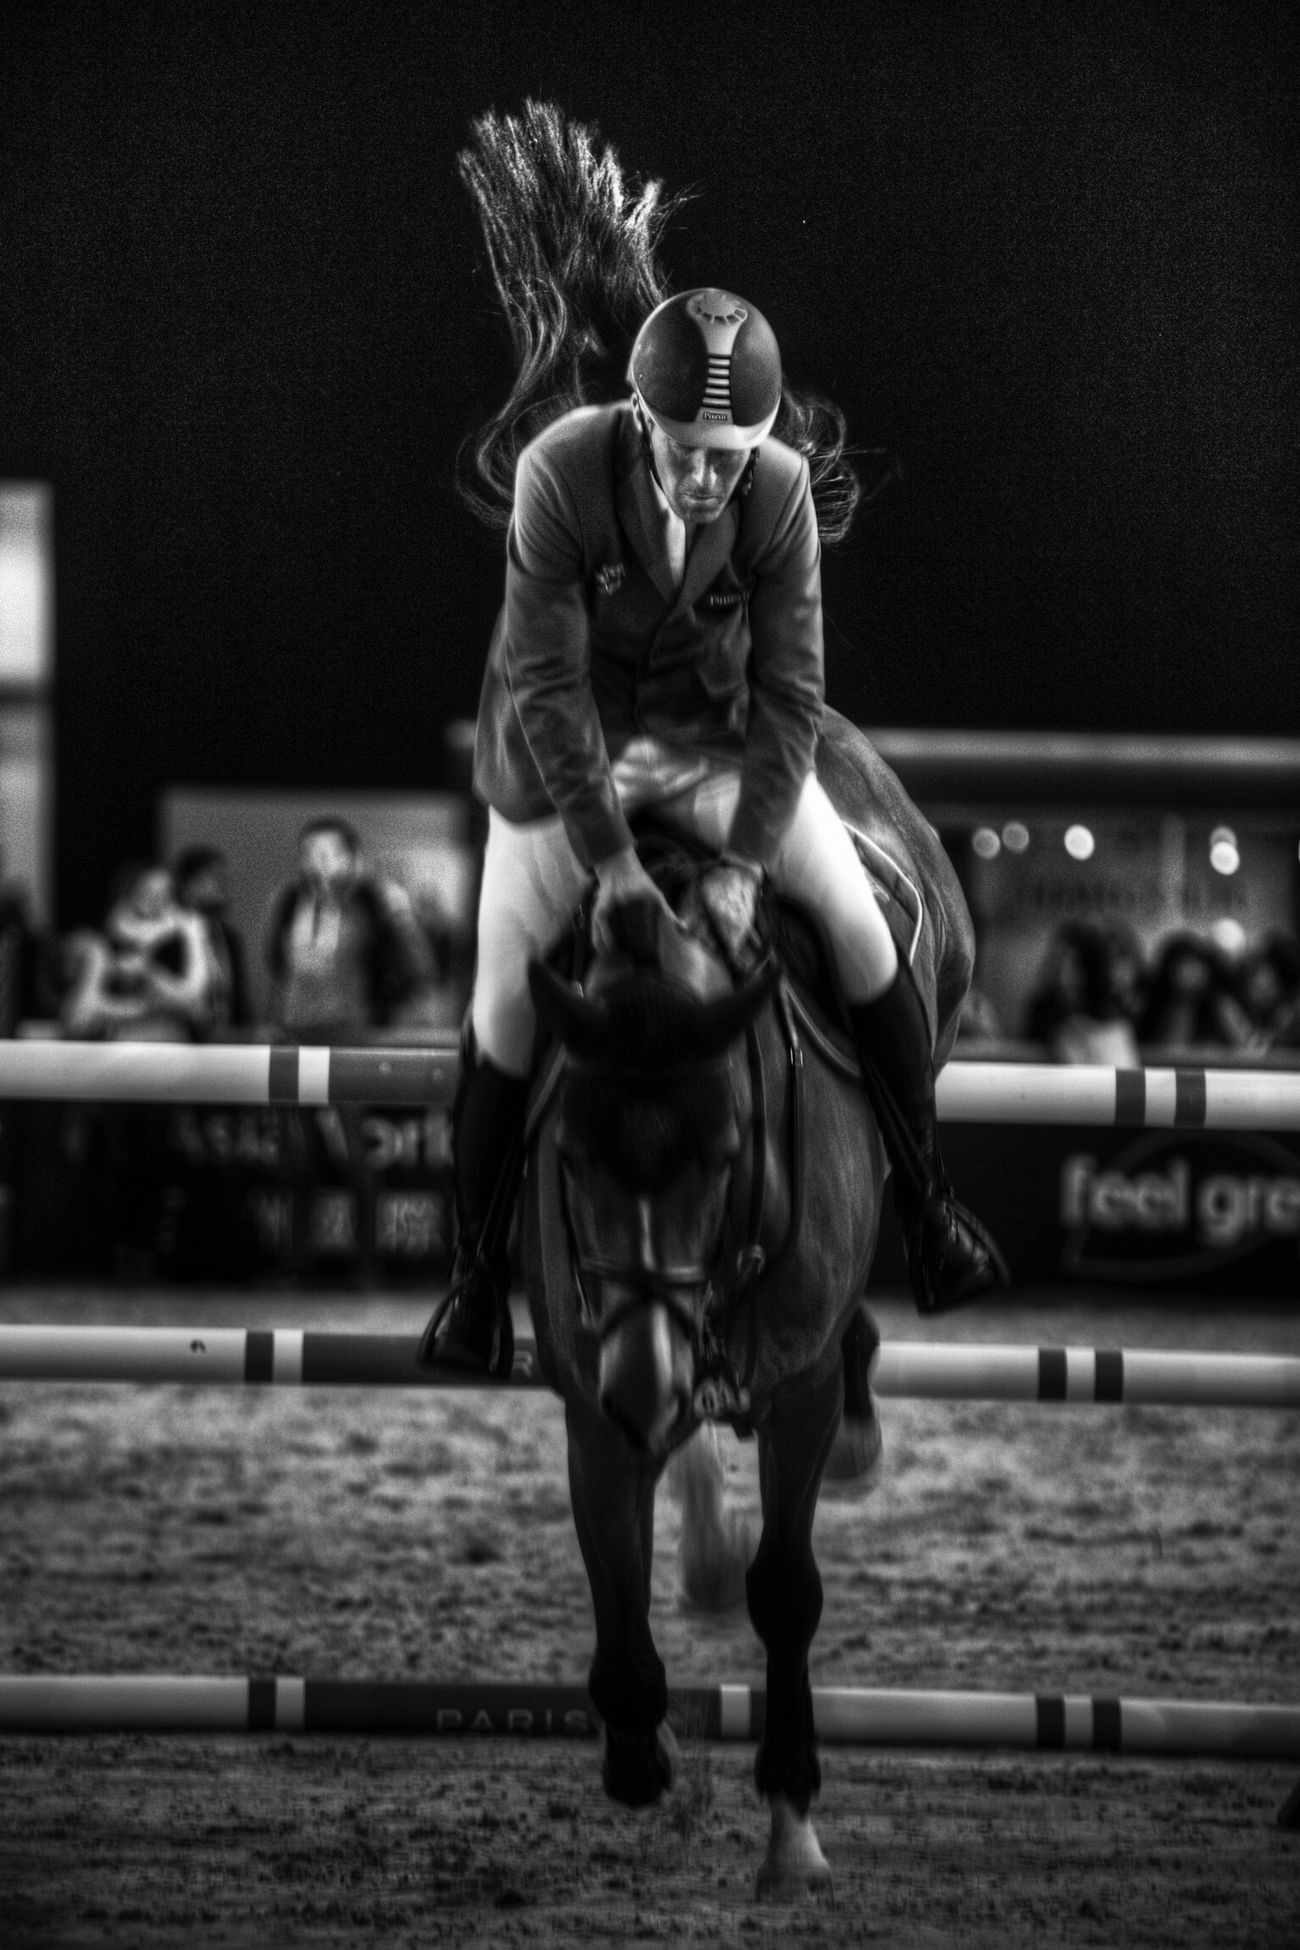 Longinesequestriancollection Hong Kong Horse Riding Black And White Equestrianphotography Longines Master Horseback Riding Horse